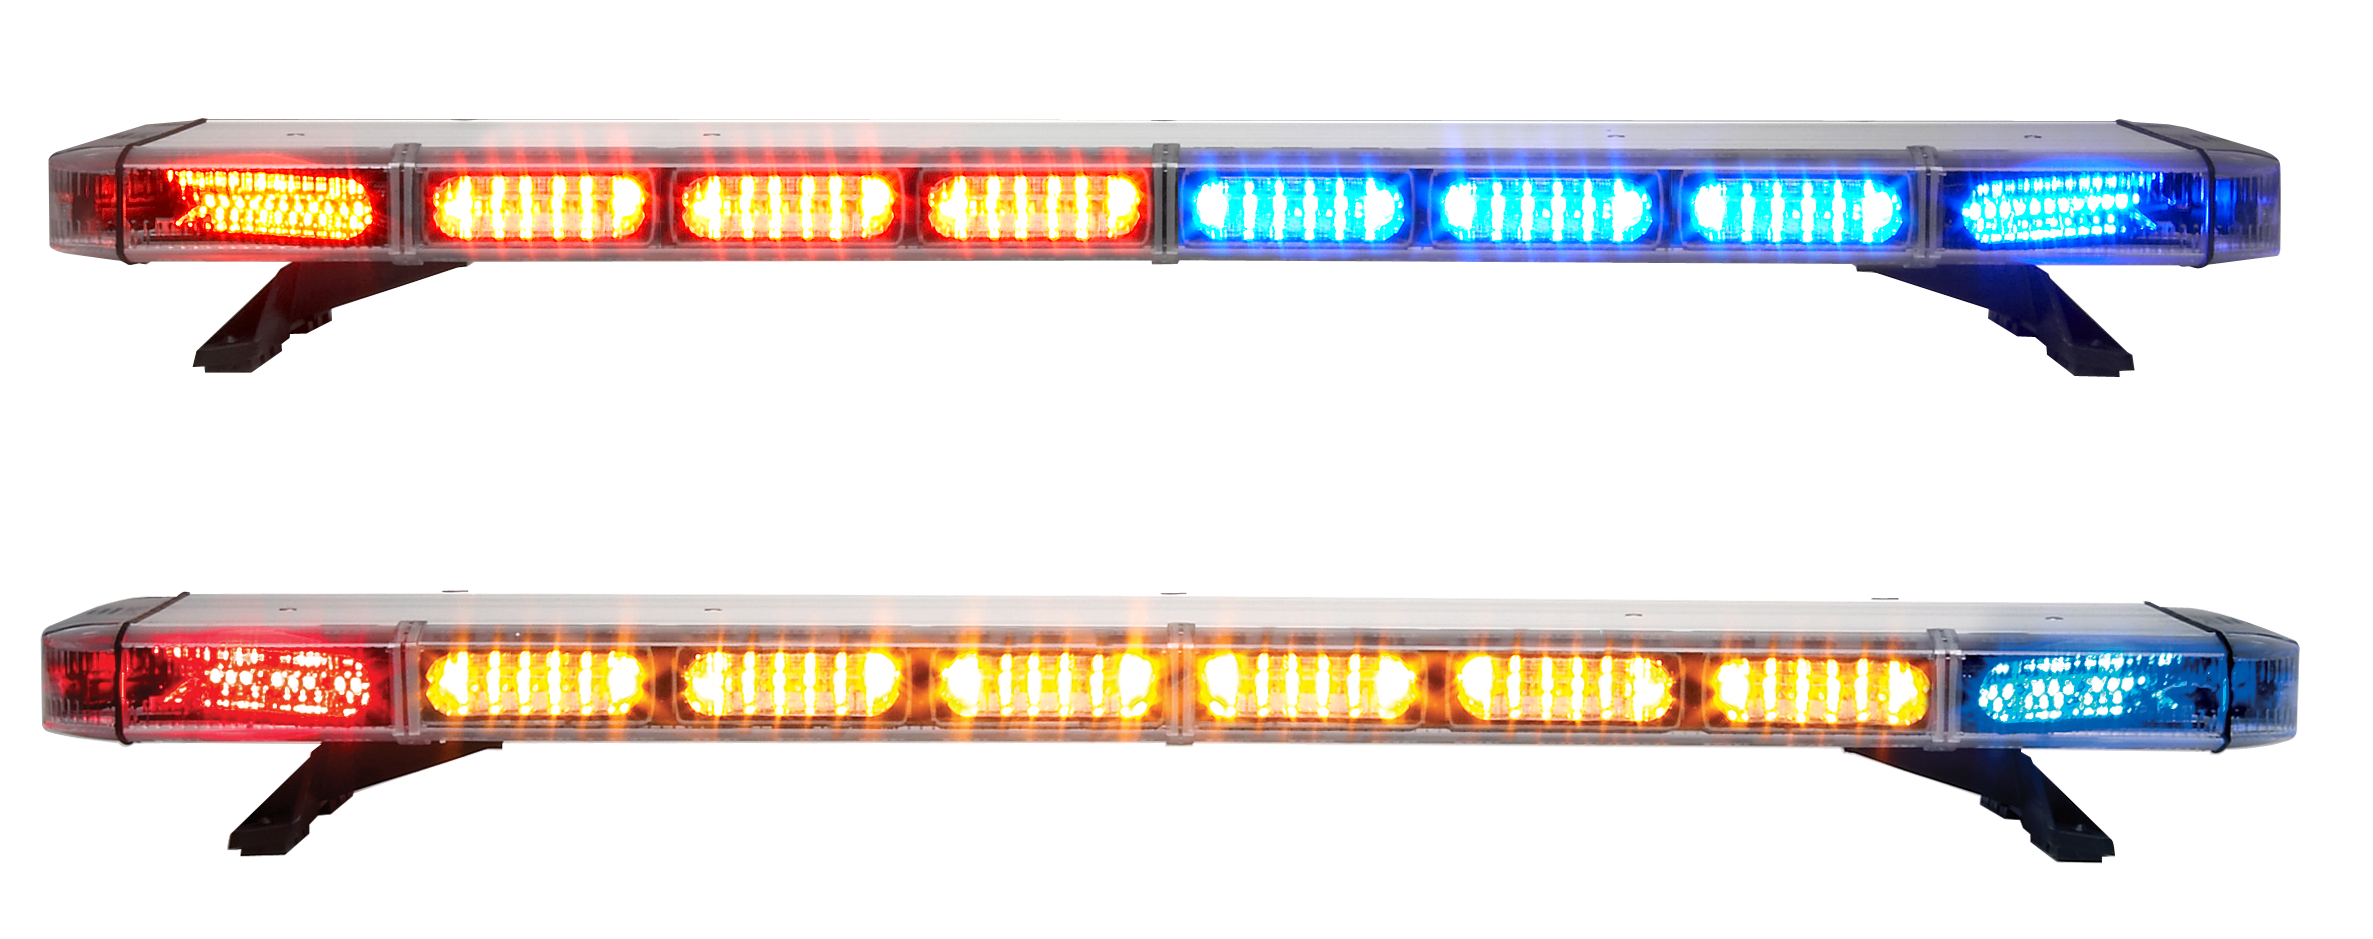 Sx liberty duo ta defender supply 939 in whelen liberty duo lightbar aloadofball Image collections